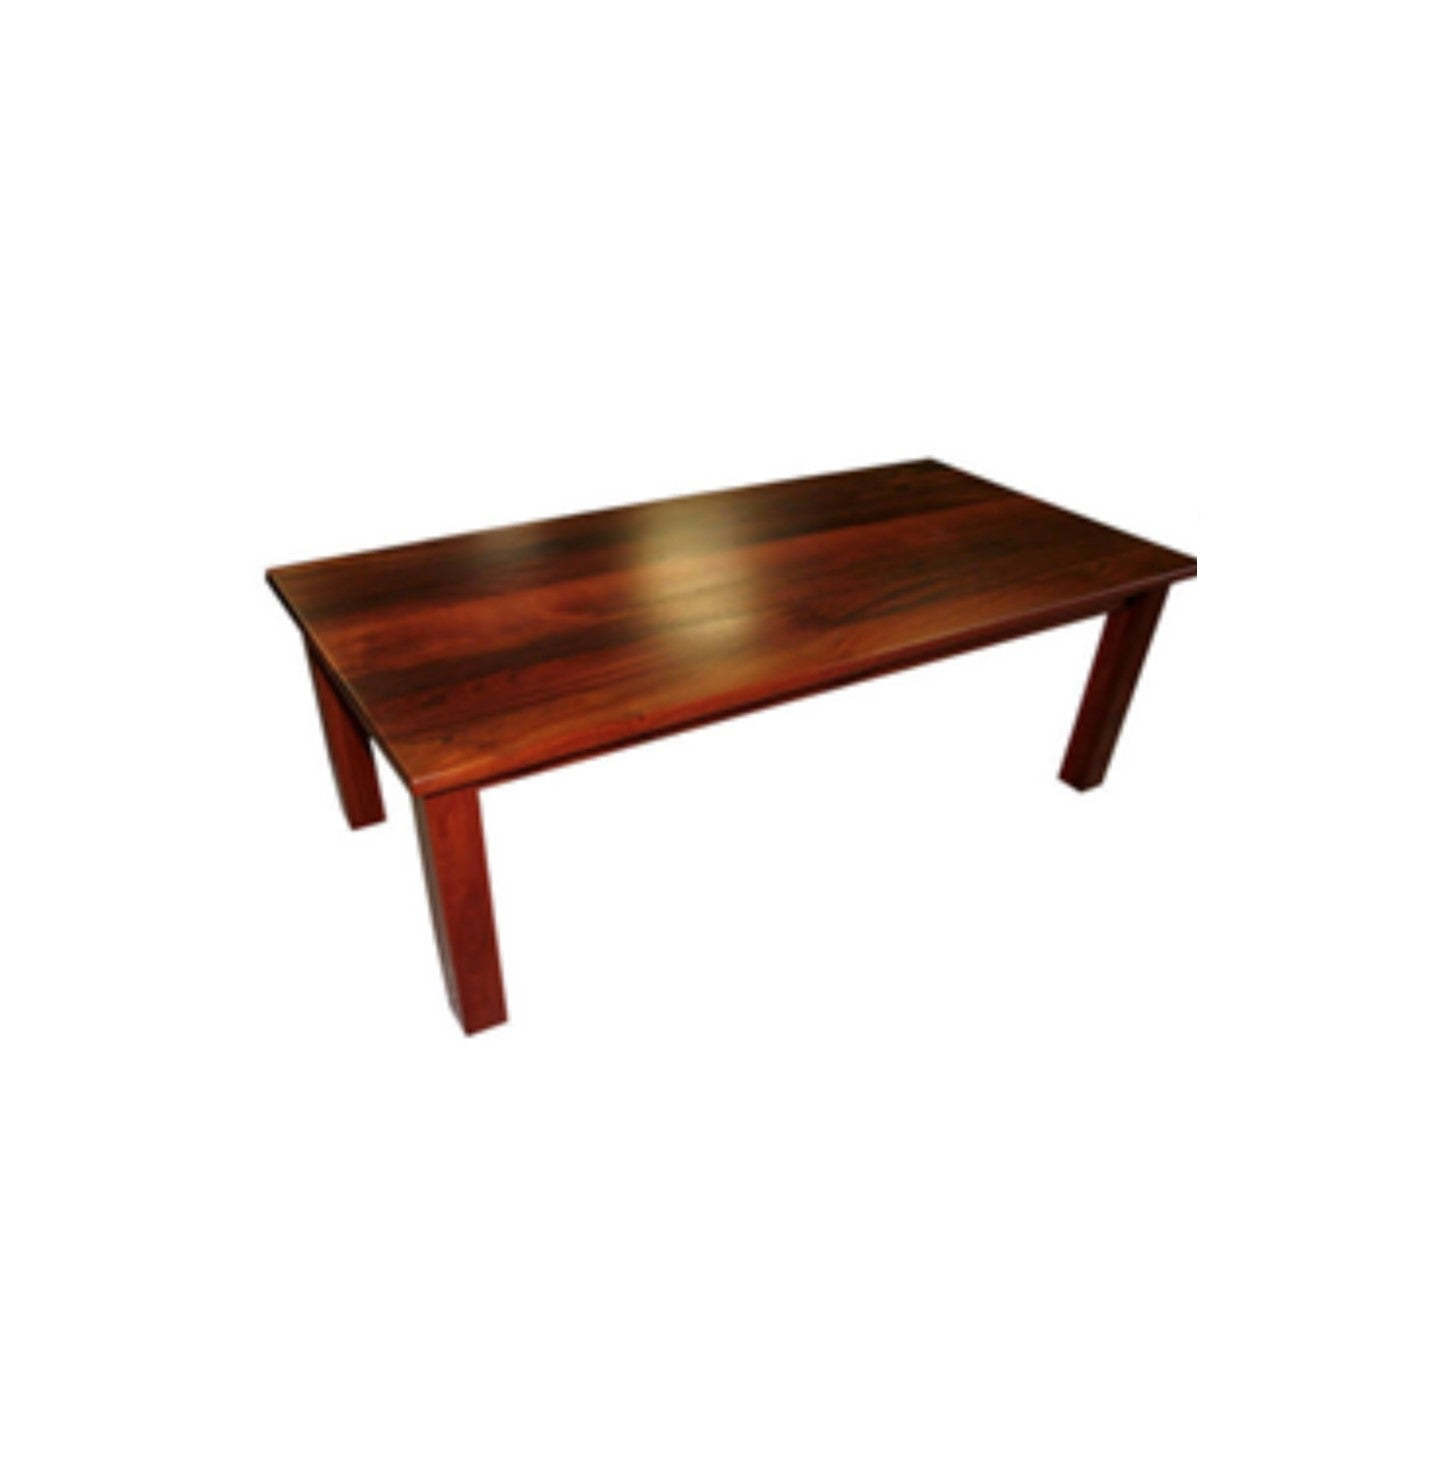 Metro 8 Jarrah Timber Dining Table L238cm